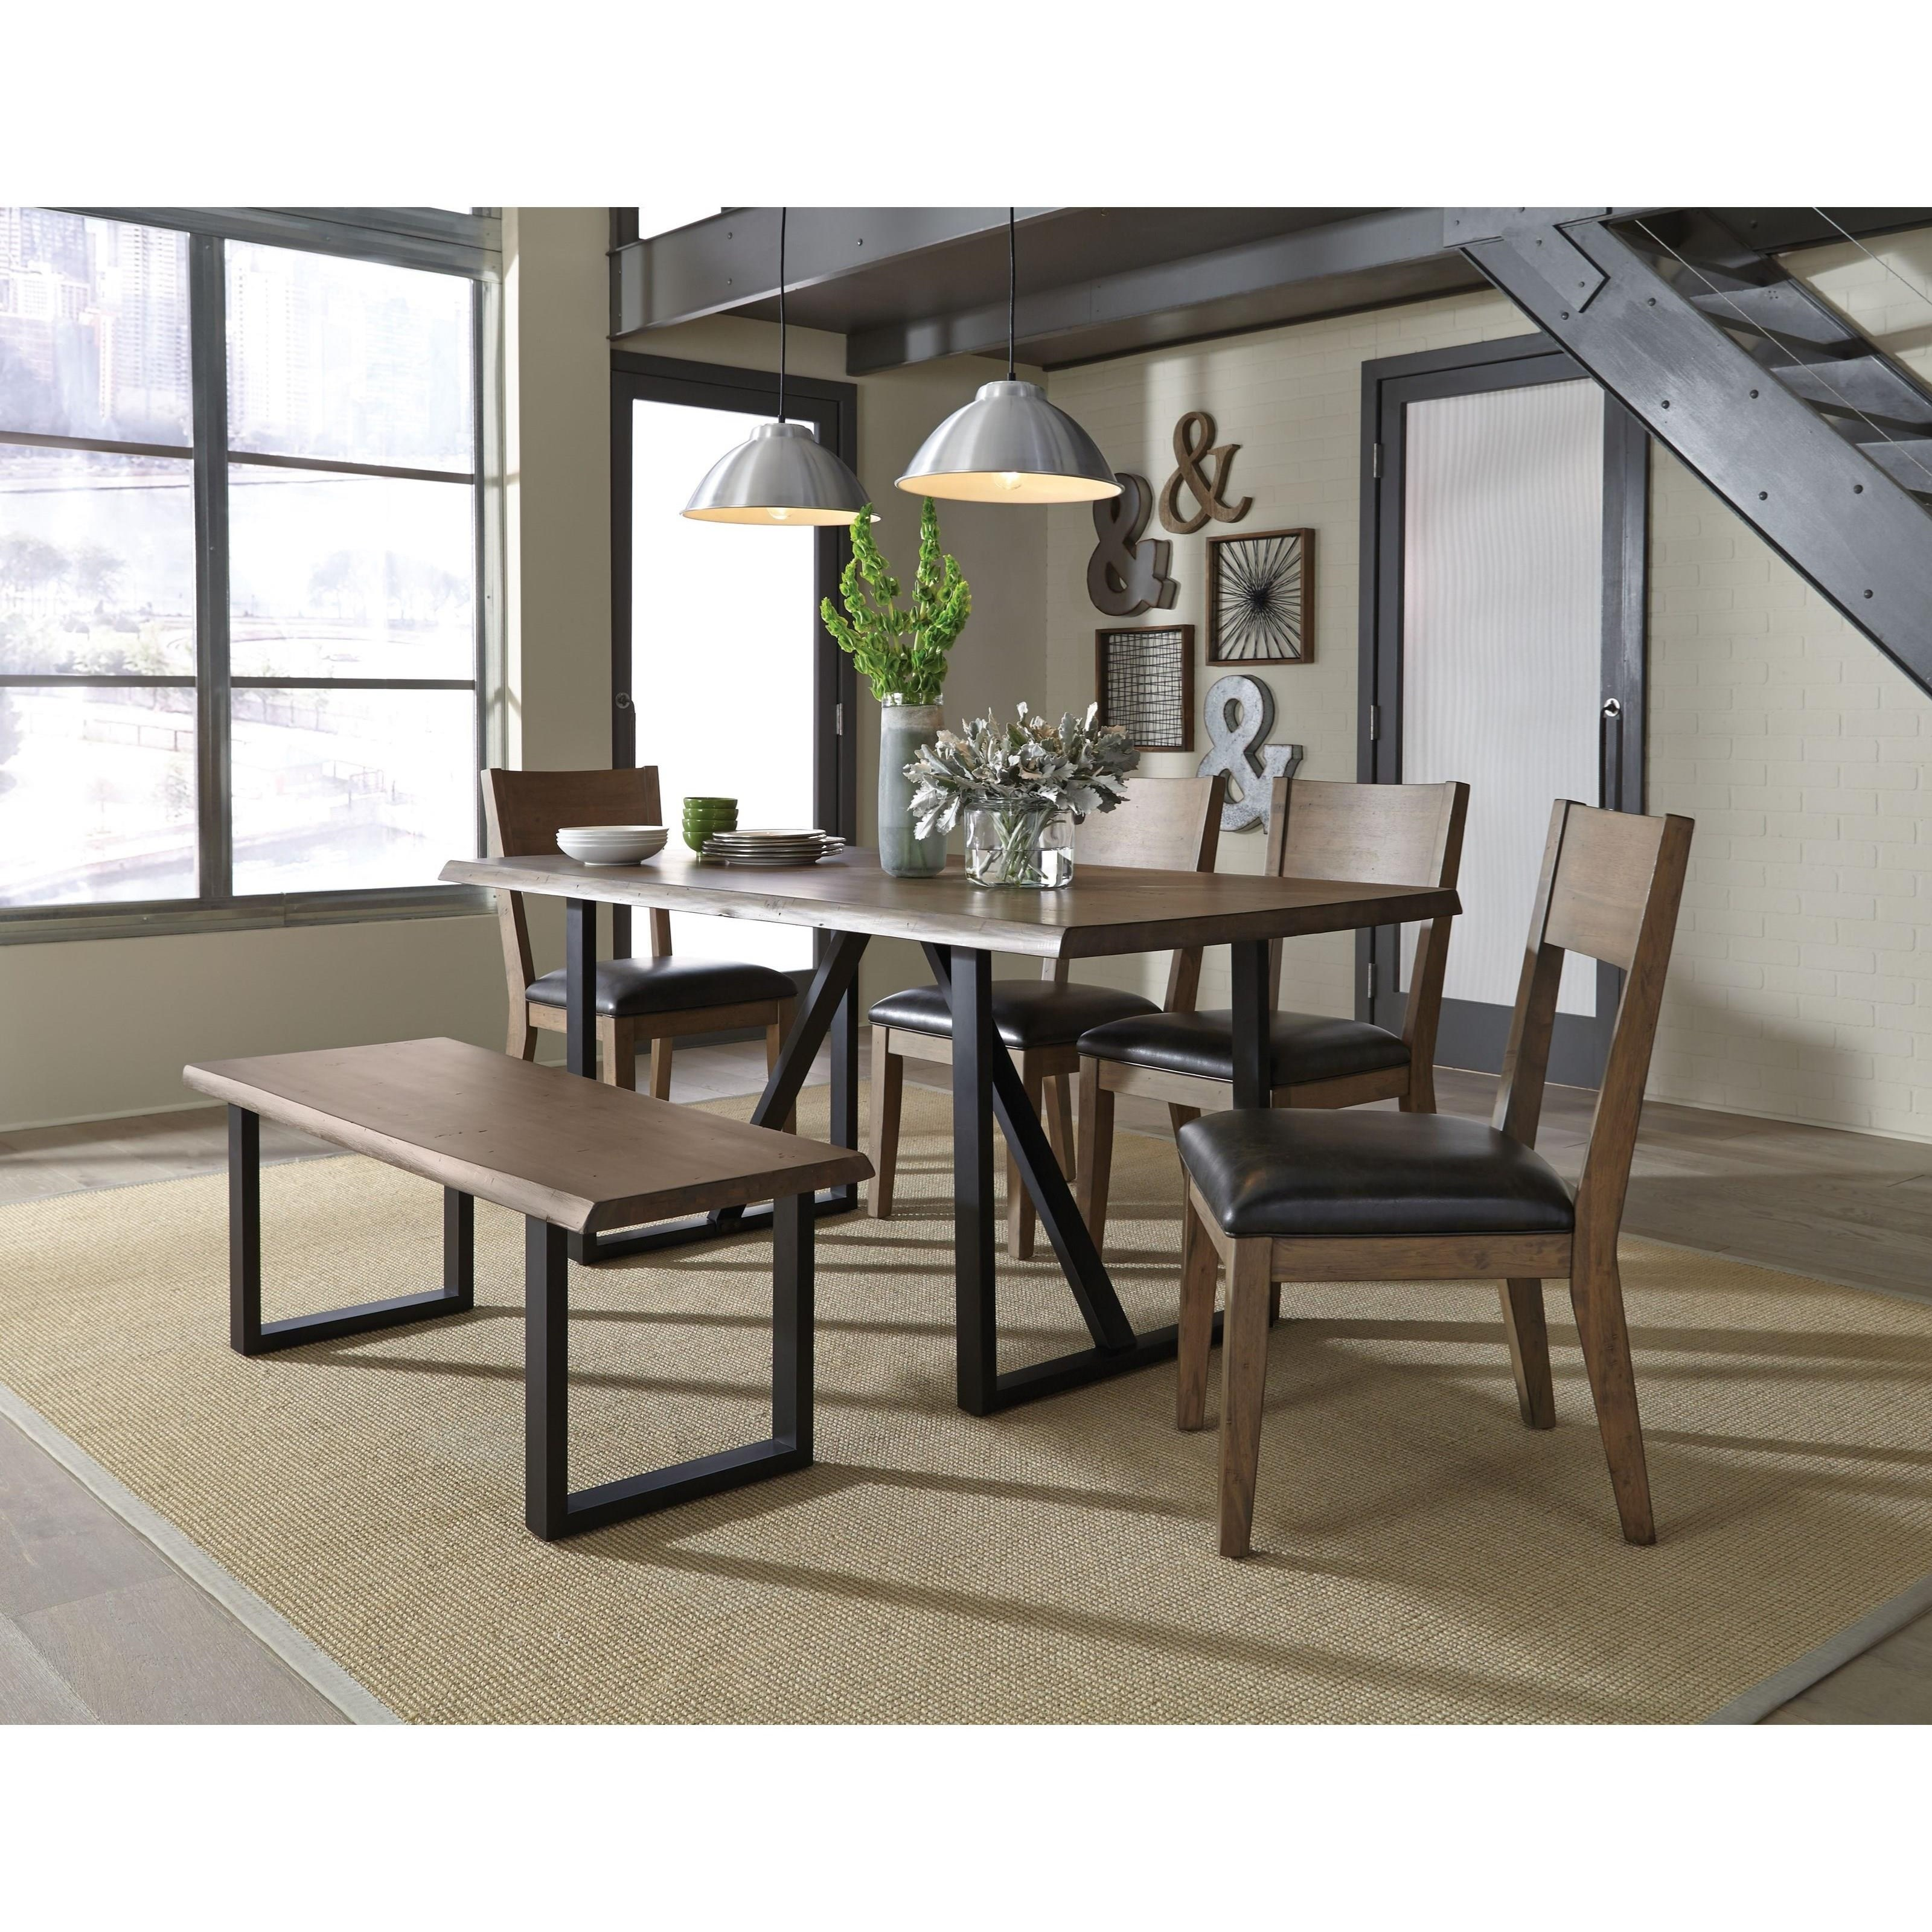 Standard furniture sierra rustic rectangular table with for Standard dining table